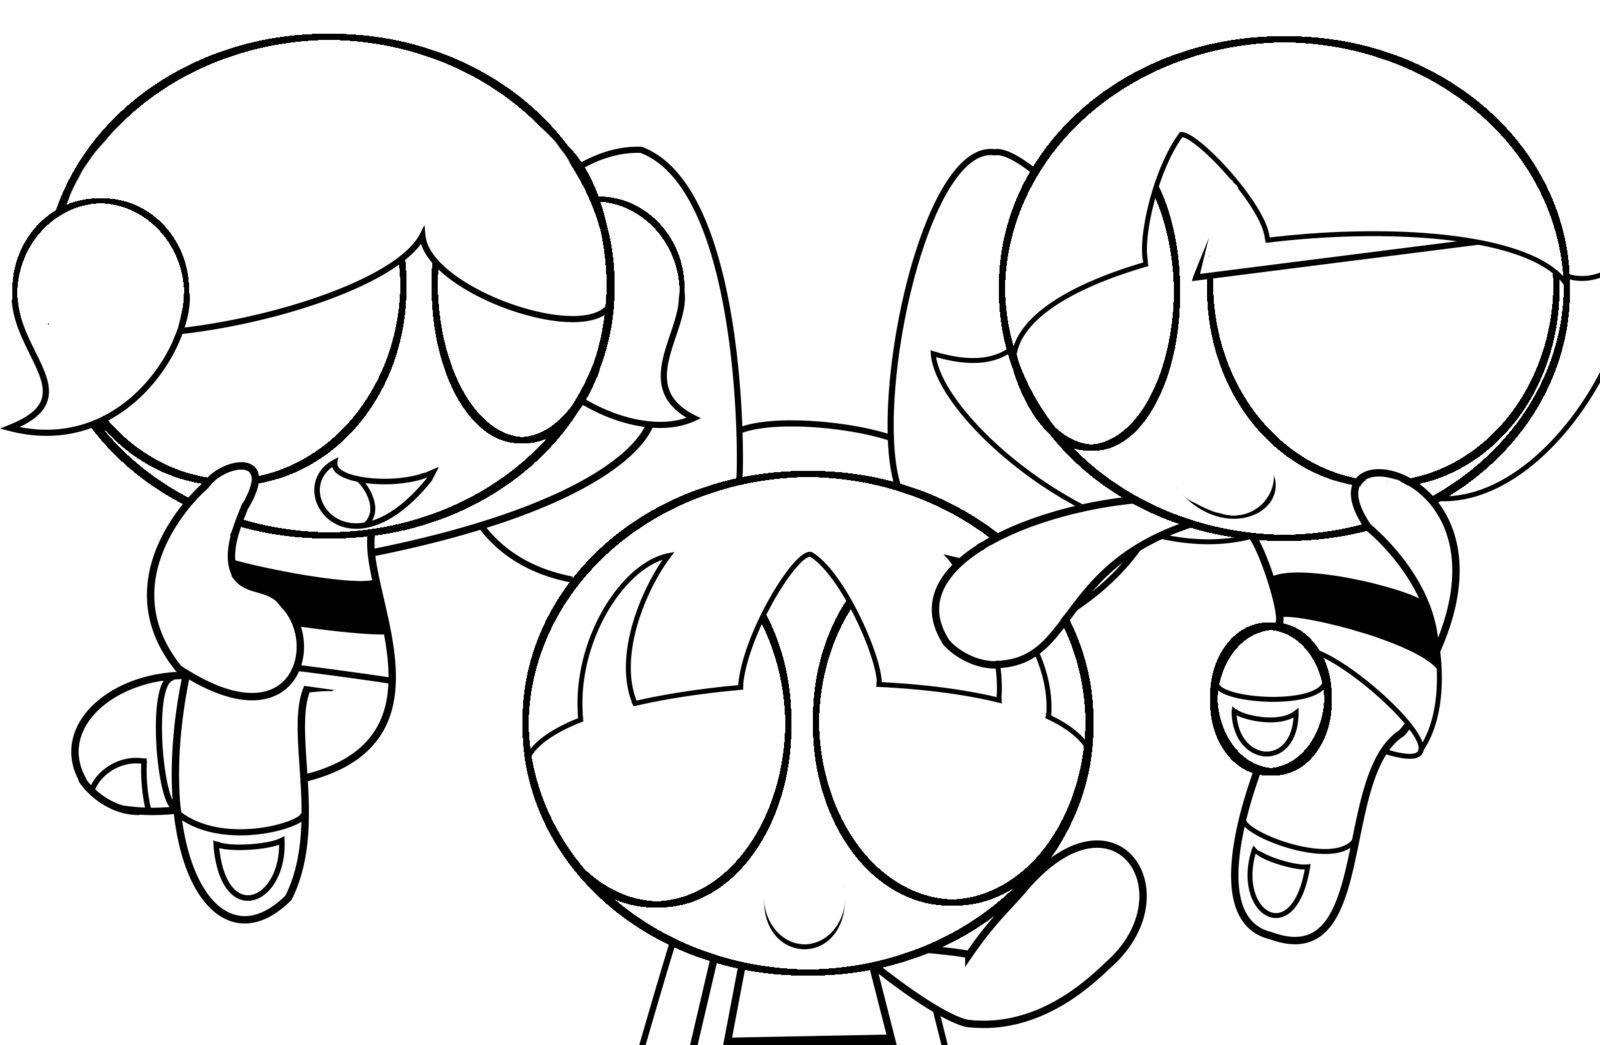 Free Printable Powerpuff Girls Coloring Pages For Kids | reference ...